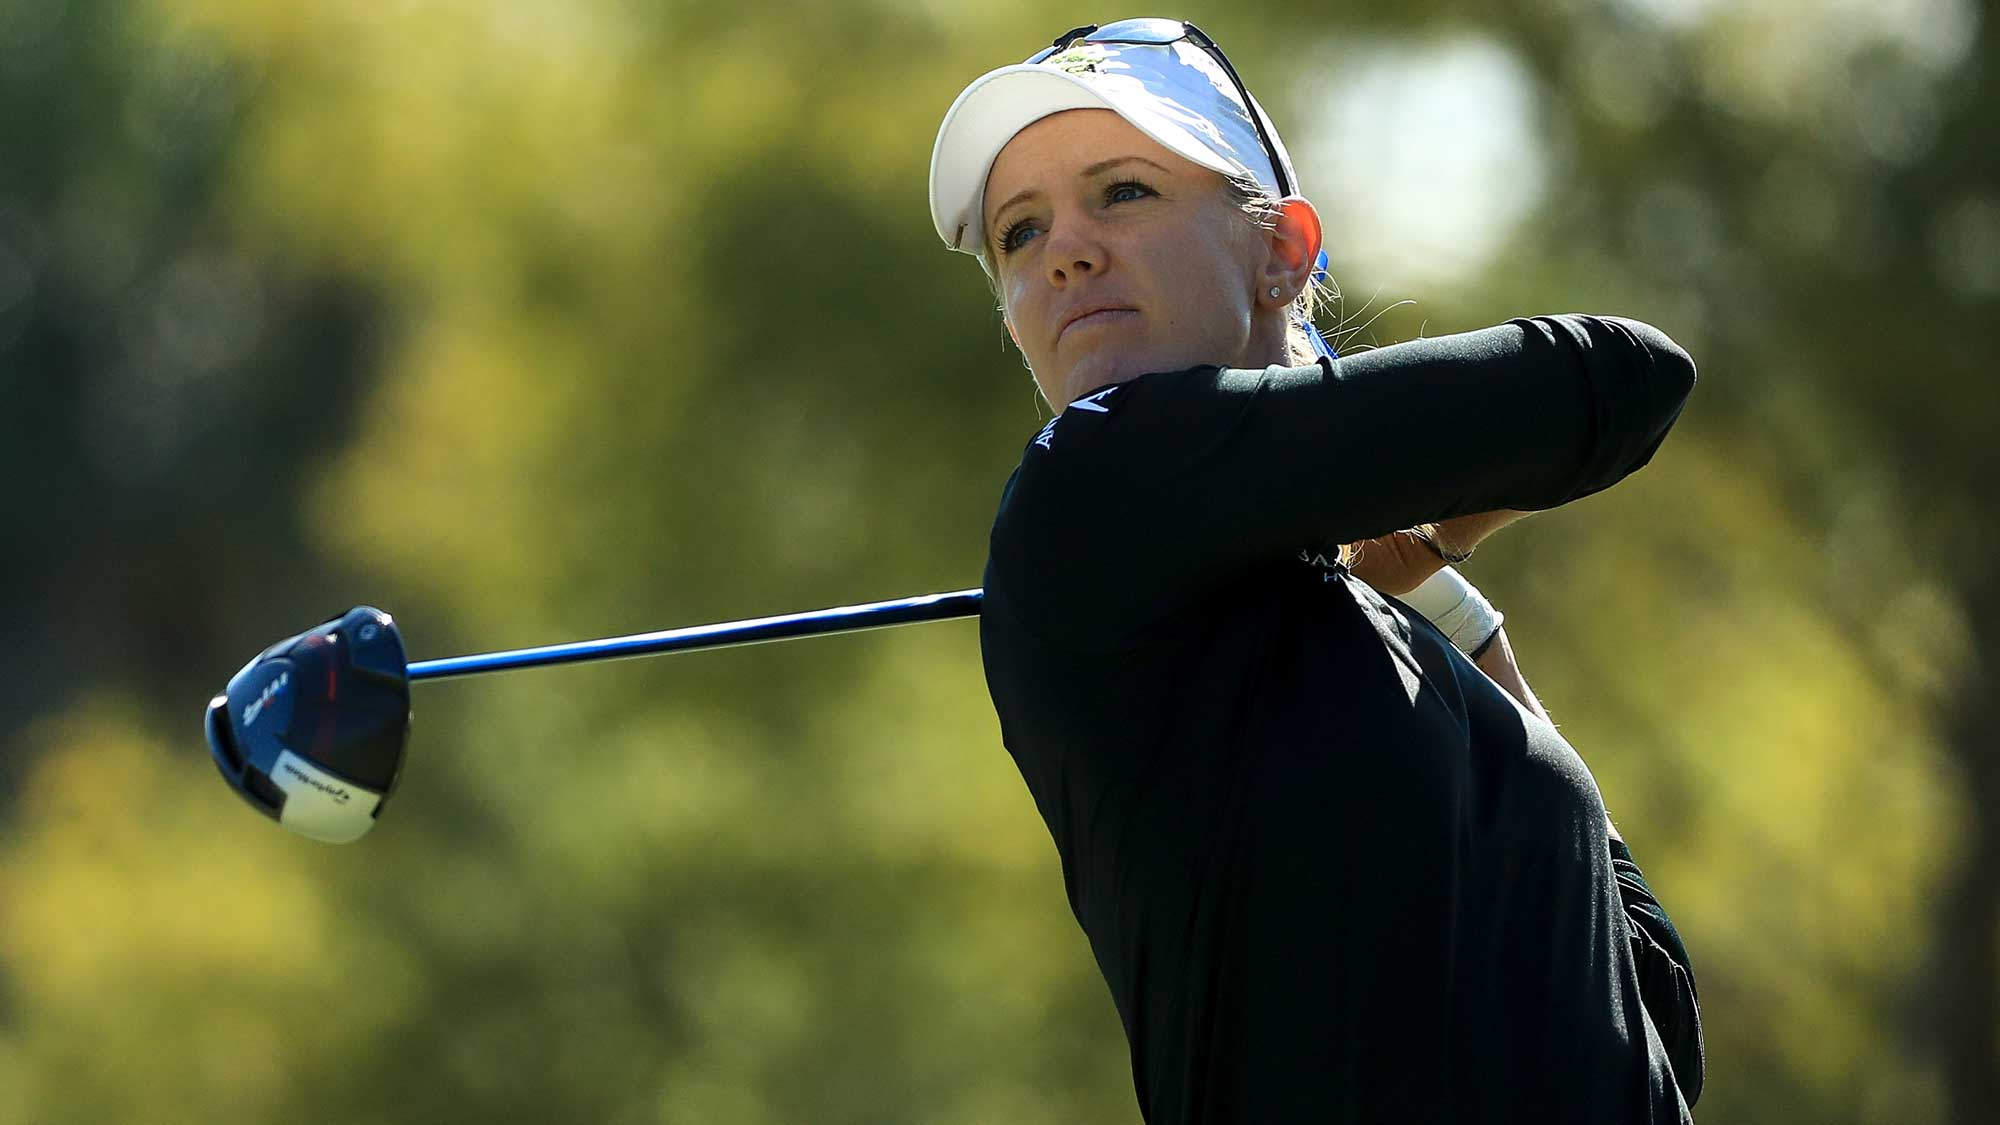 Amy Olson plays her shot from the third tee during the third round of the LPGA CME Group Tour Championship